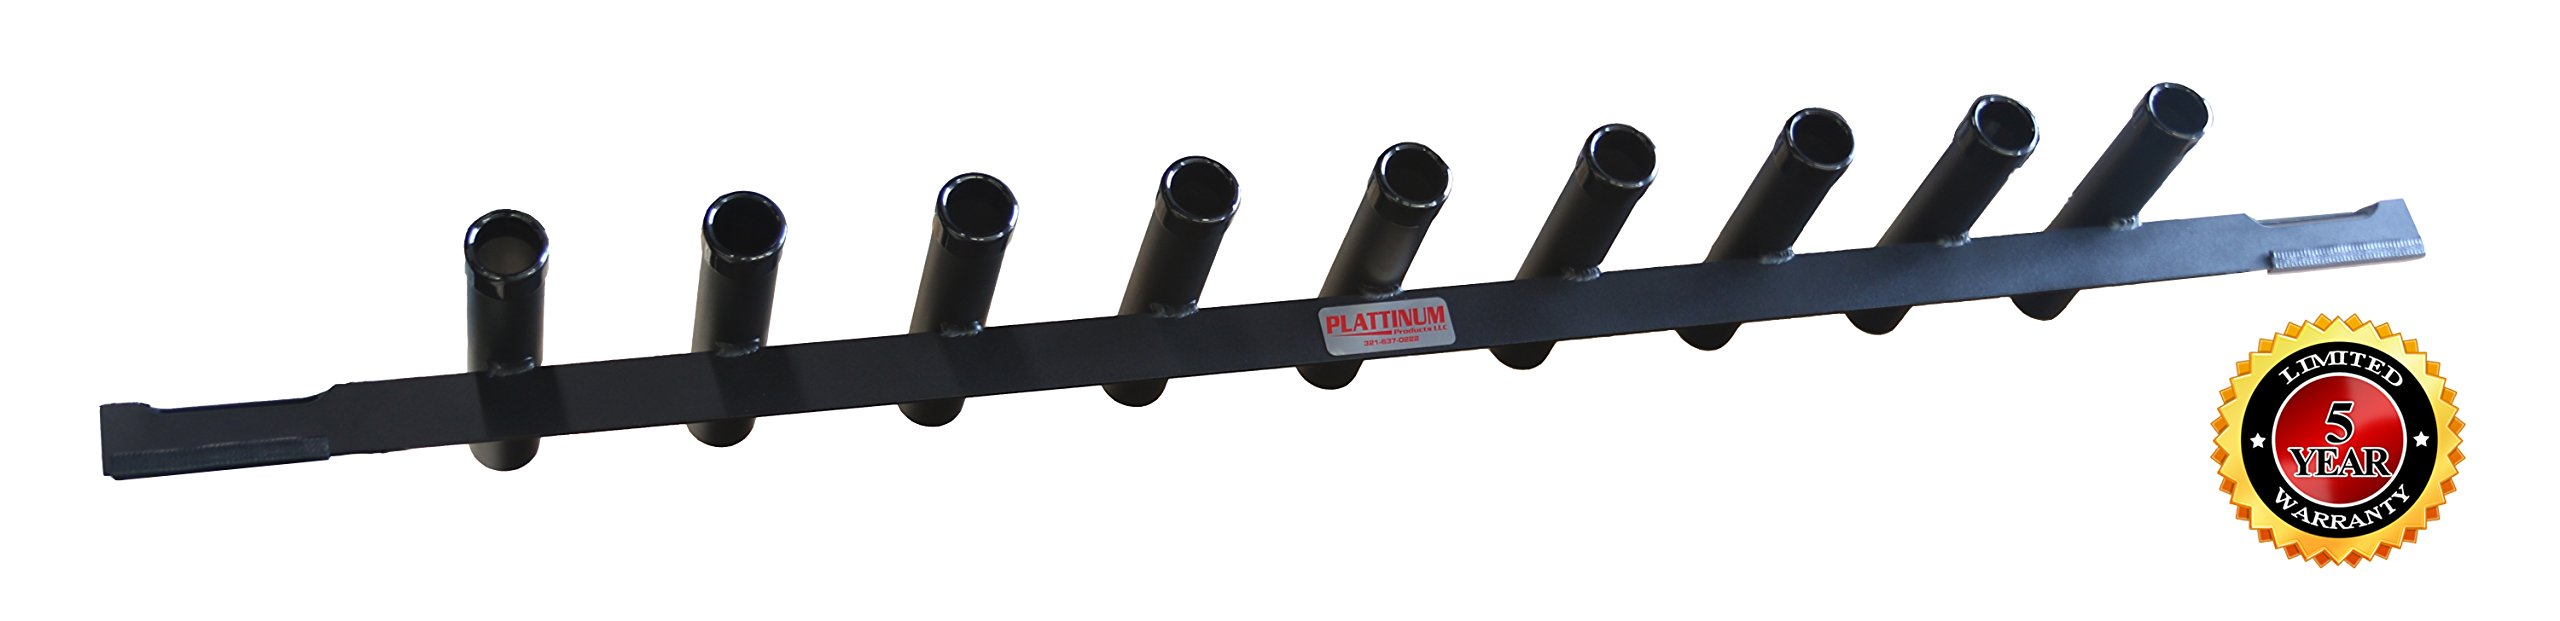 Fishing Rod Holder Across Bedrail for Full Size Trucks POWDER COATED BLACK by Plattinum Products